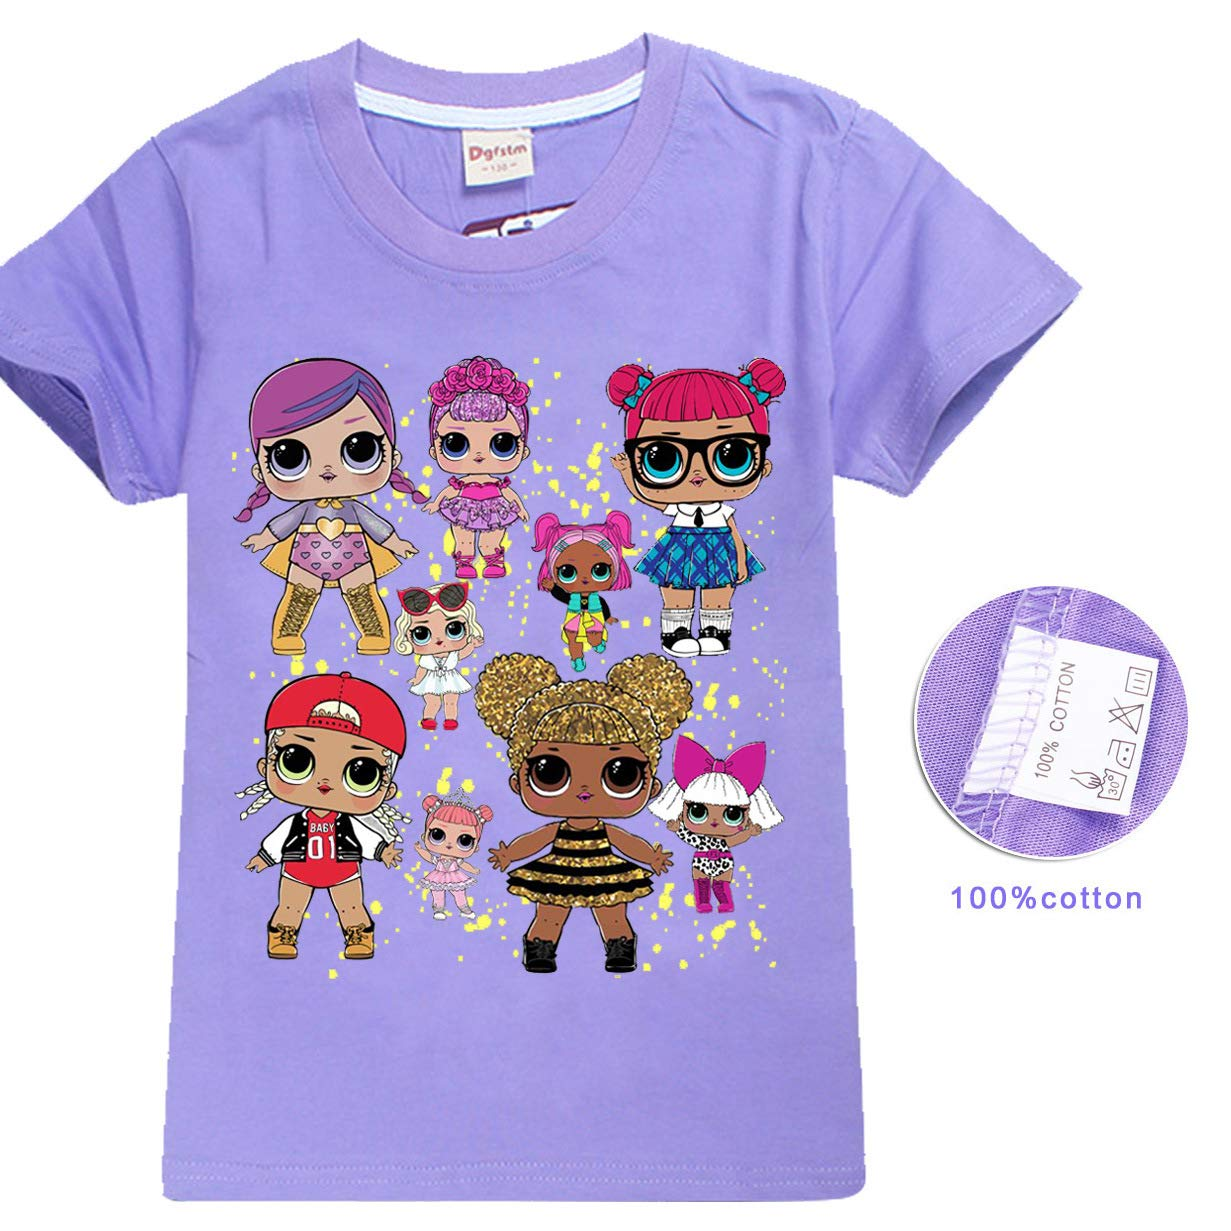 LOL Surprise Doll T-Shirt Girls Tops Tees 100/% Cotton